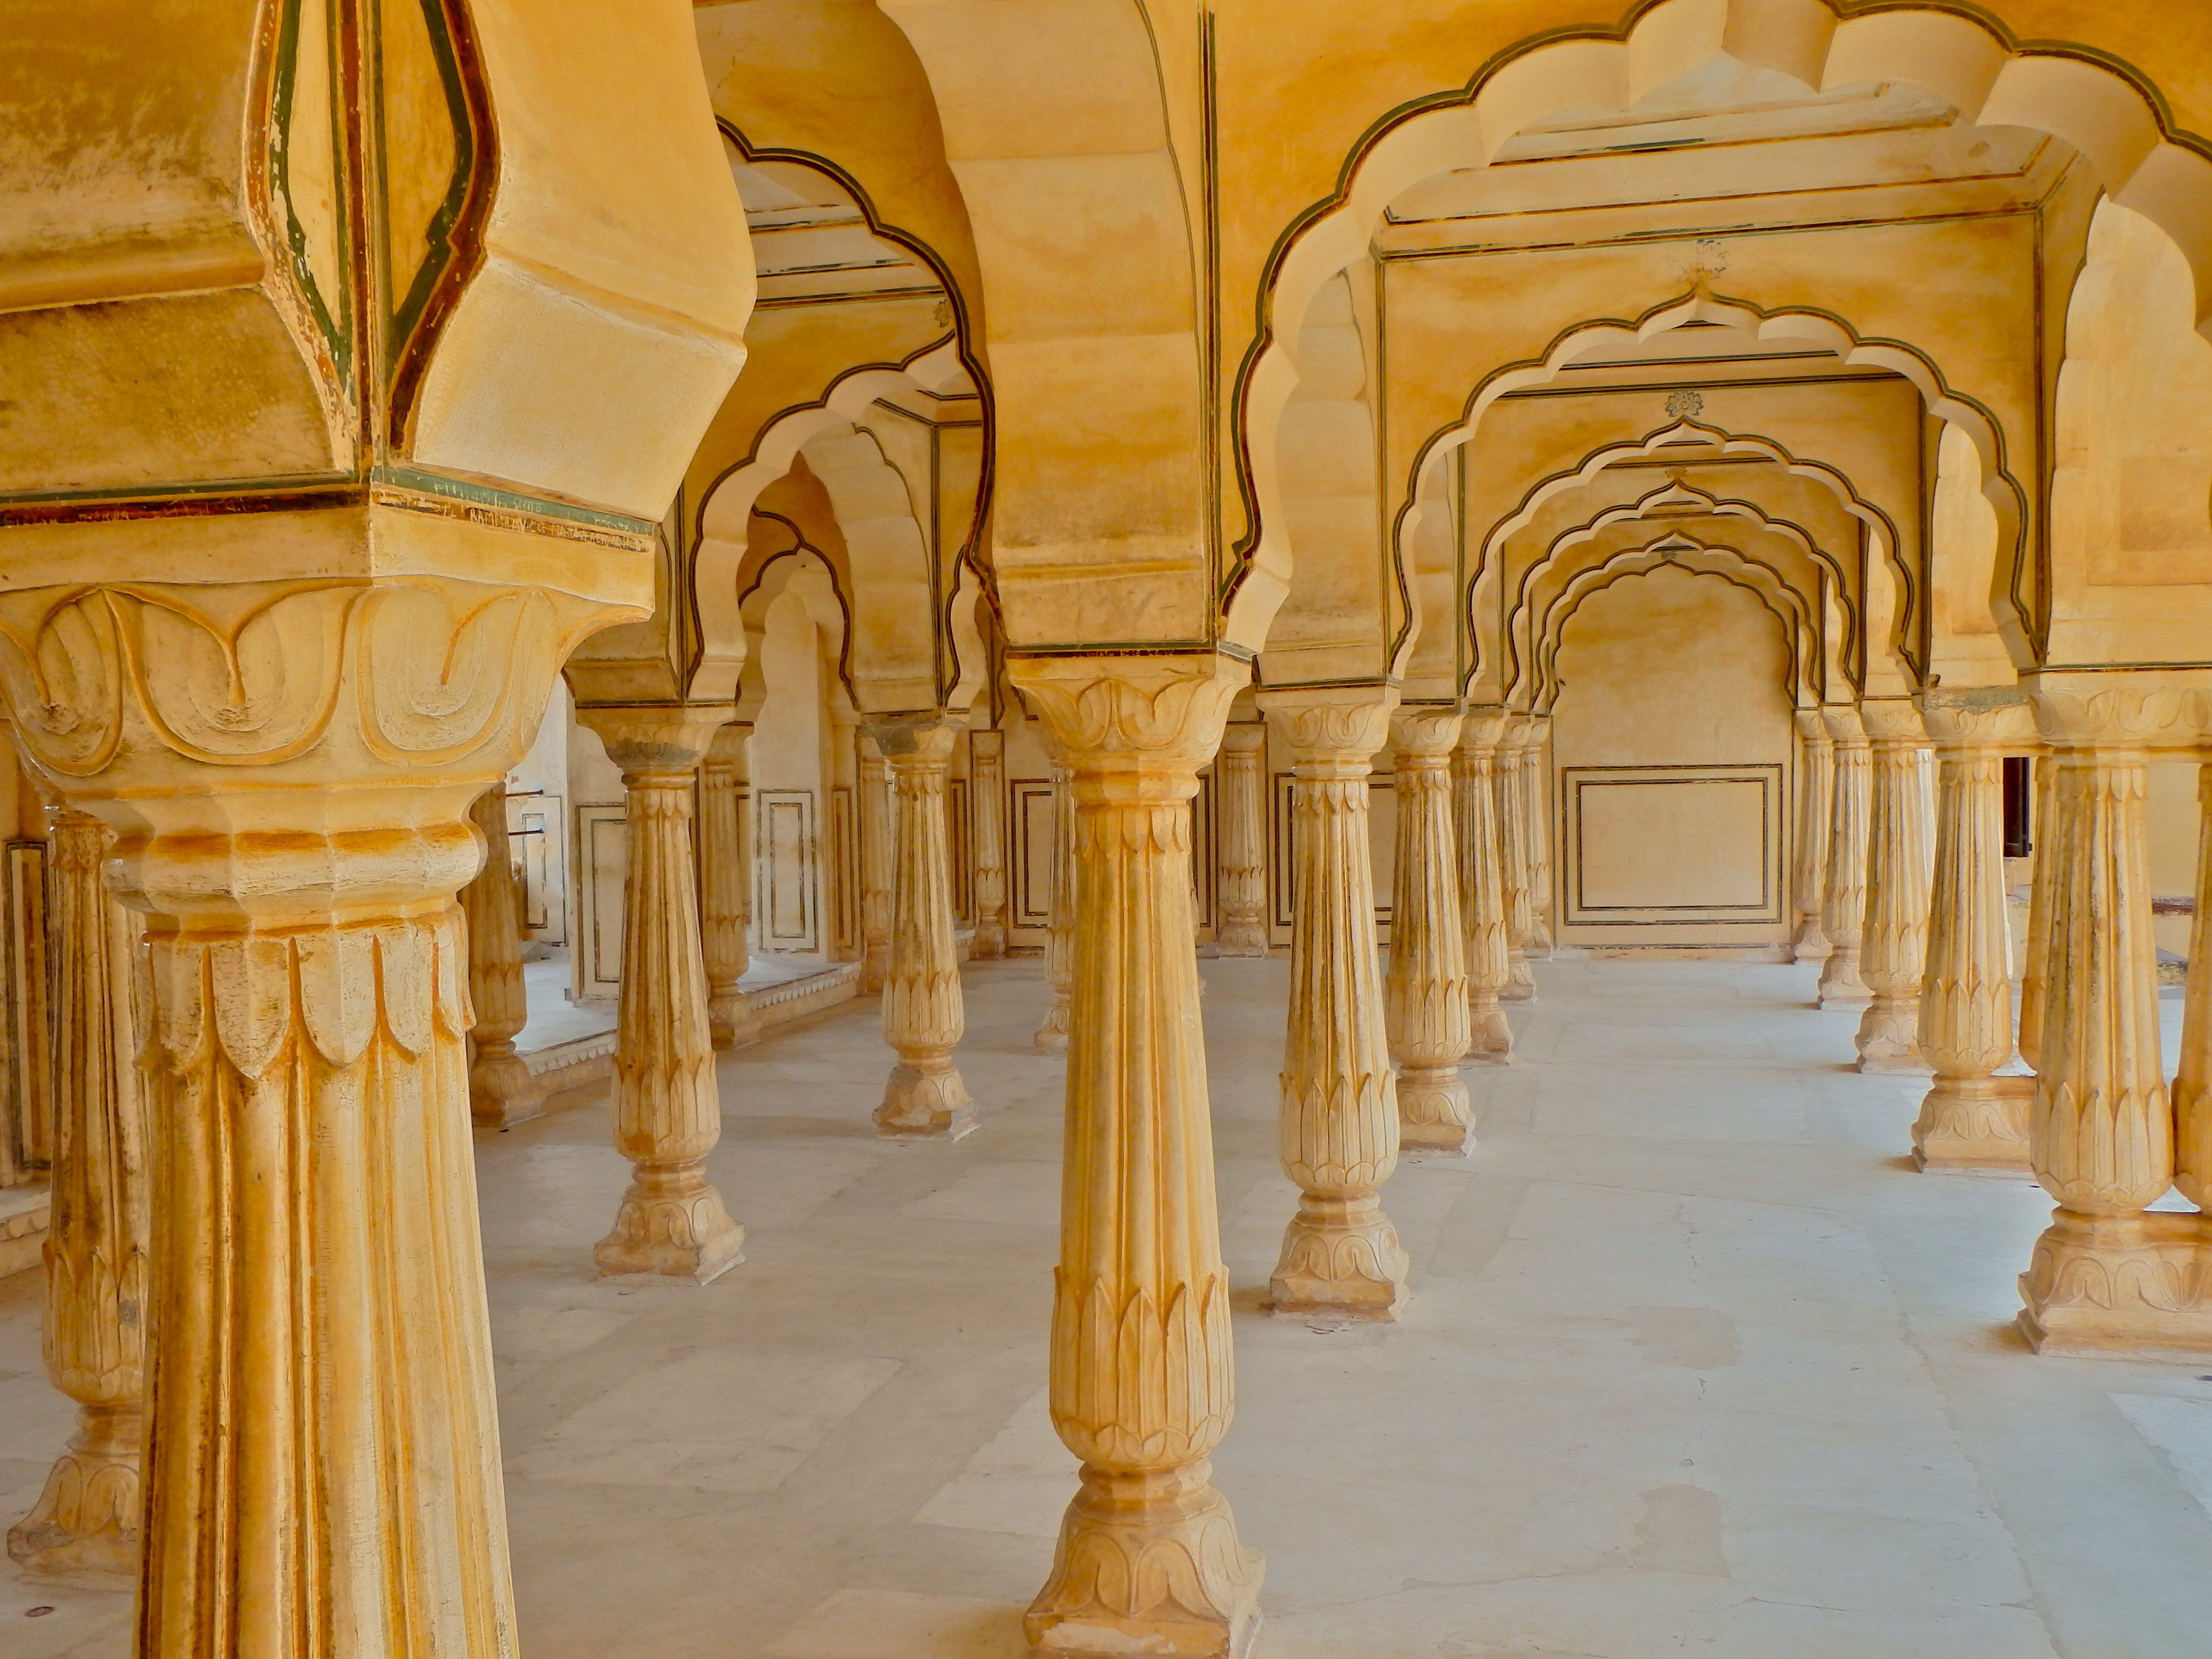 historical places to visit in india best forts in rajasthan best fort in india the agra fort travel guide